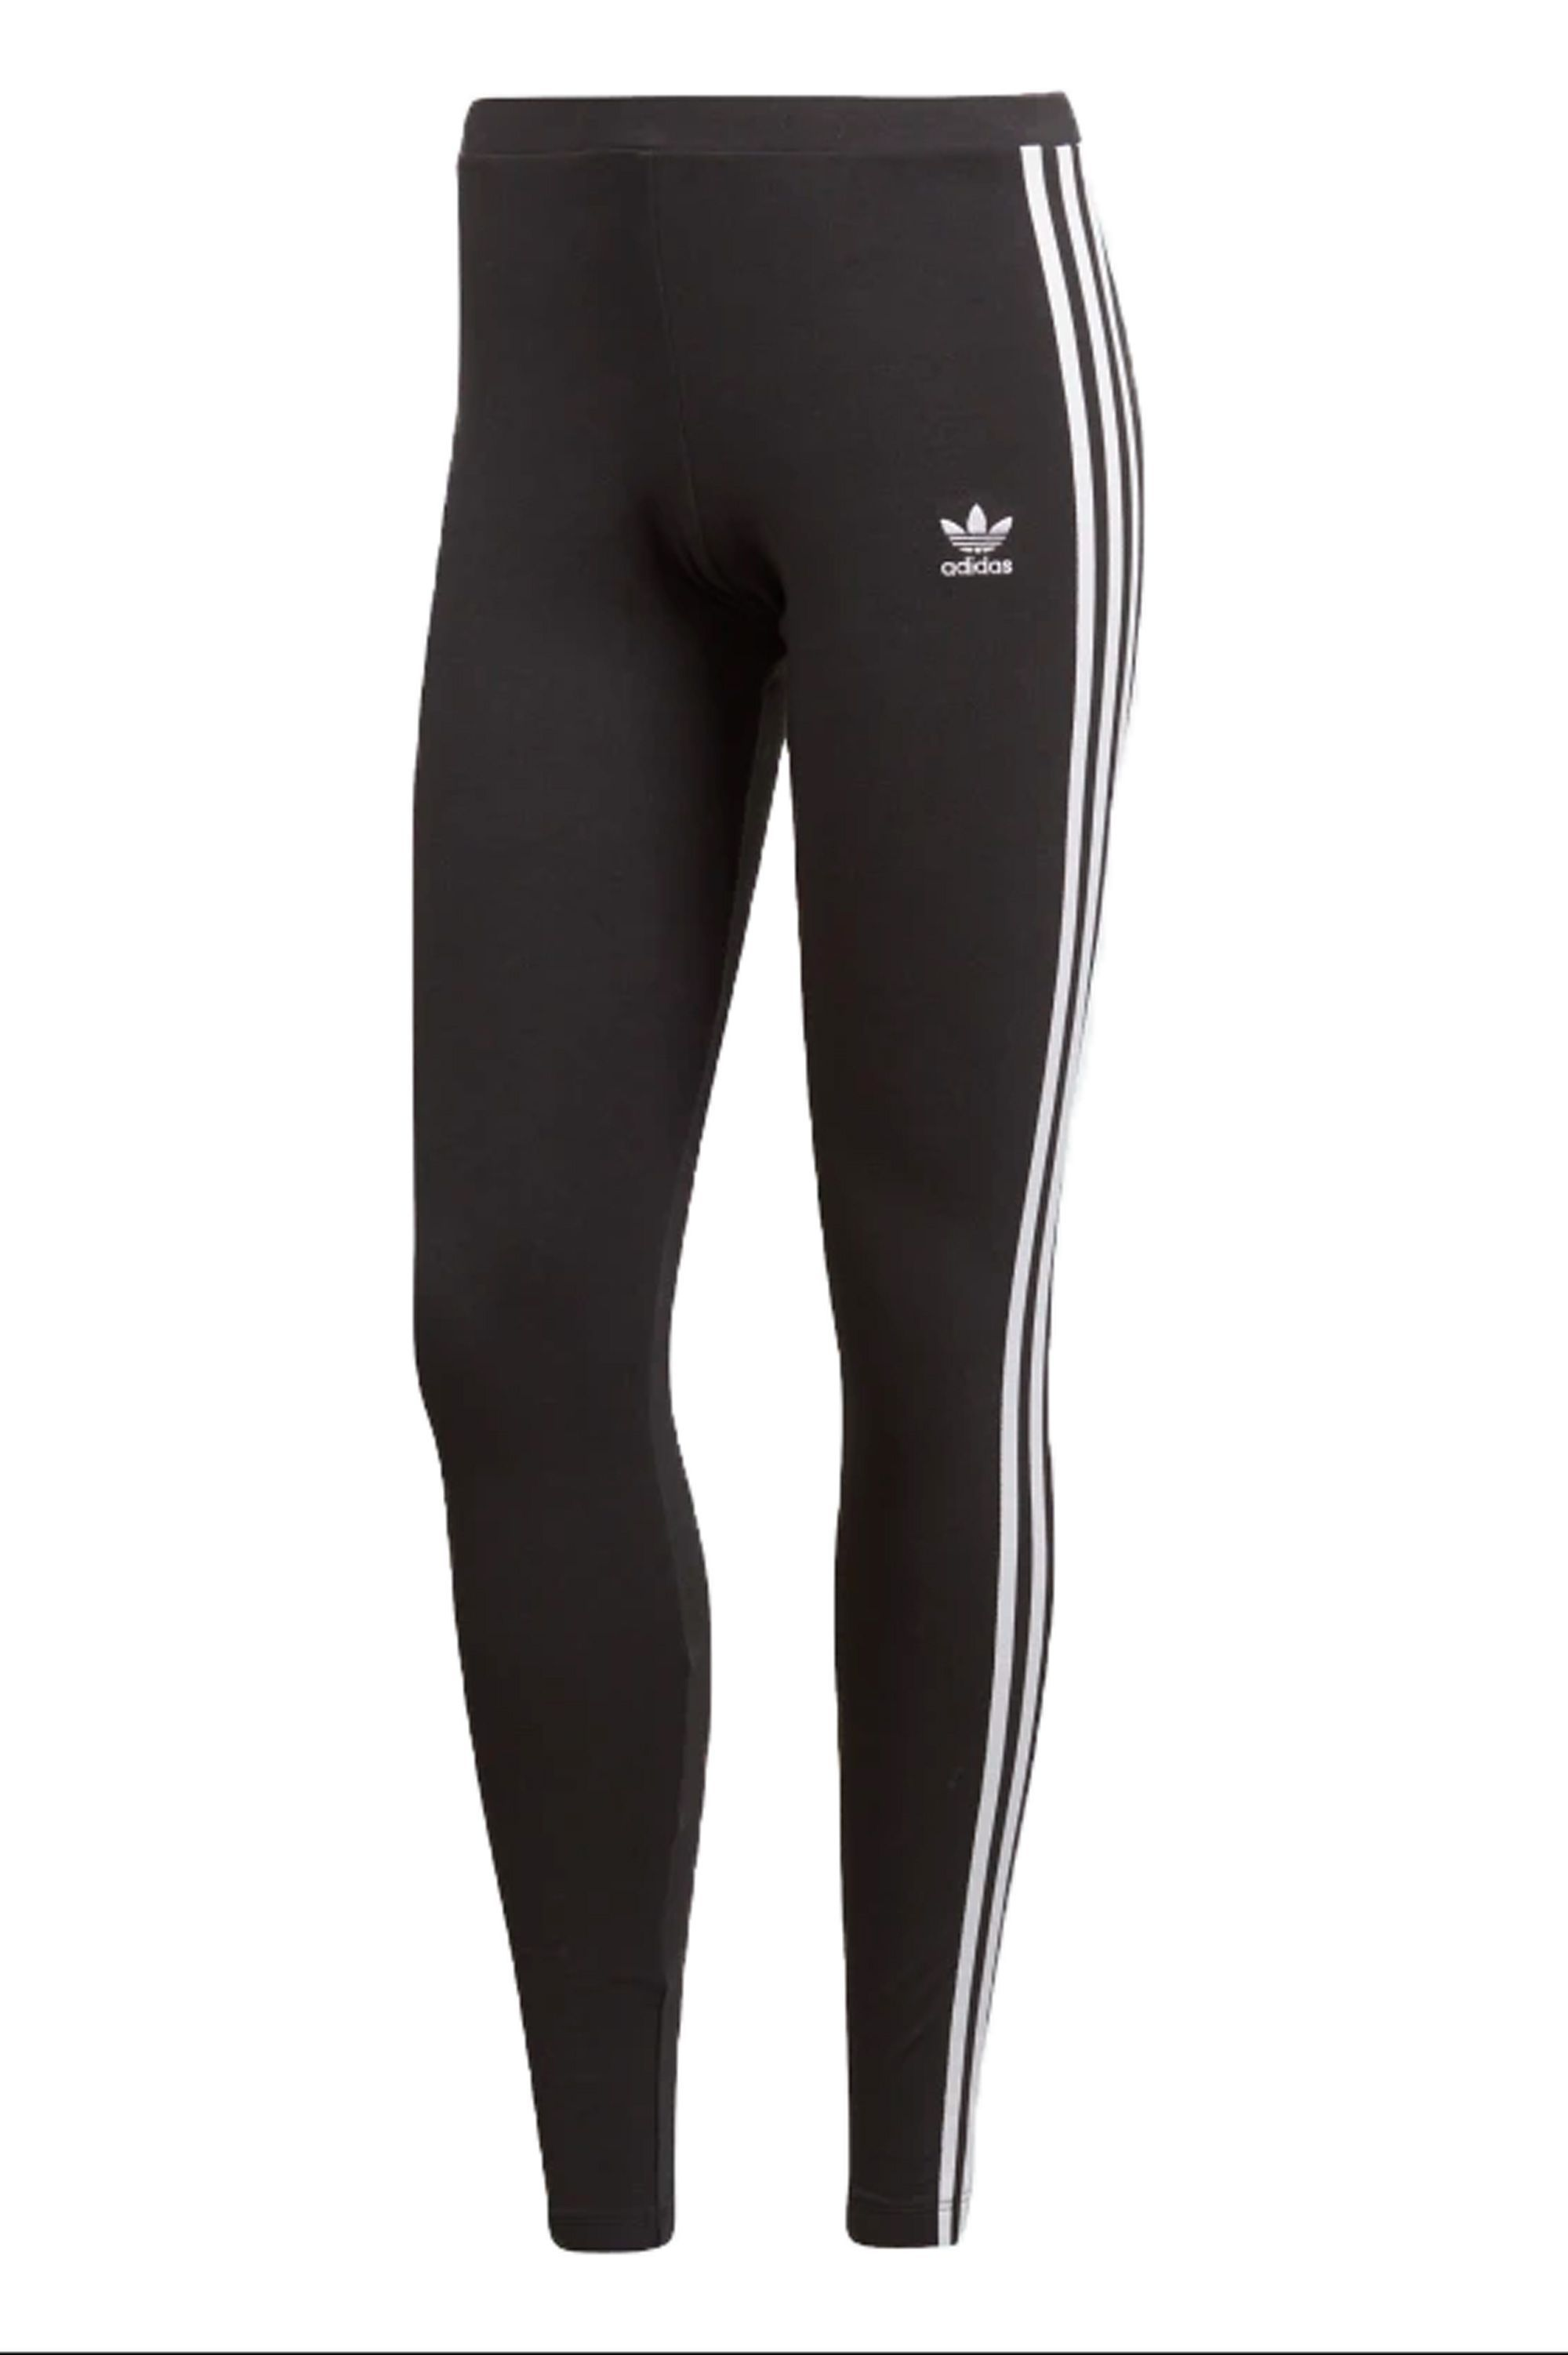 adidas leggings 3 stripes sale